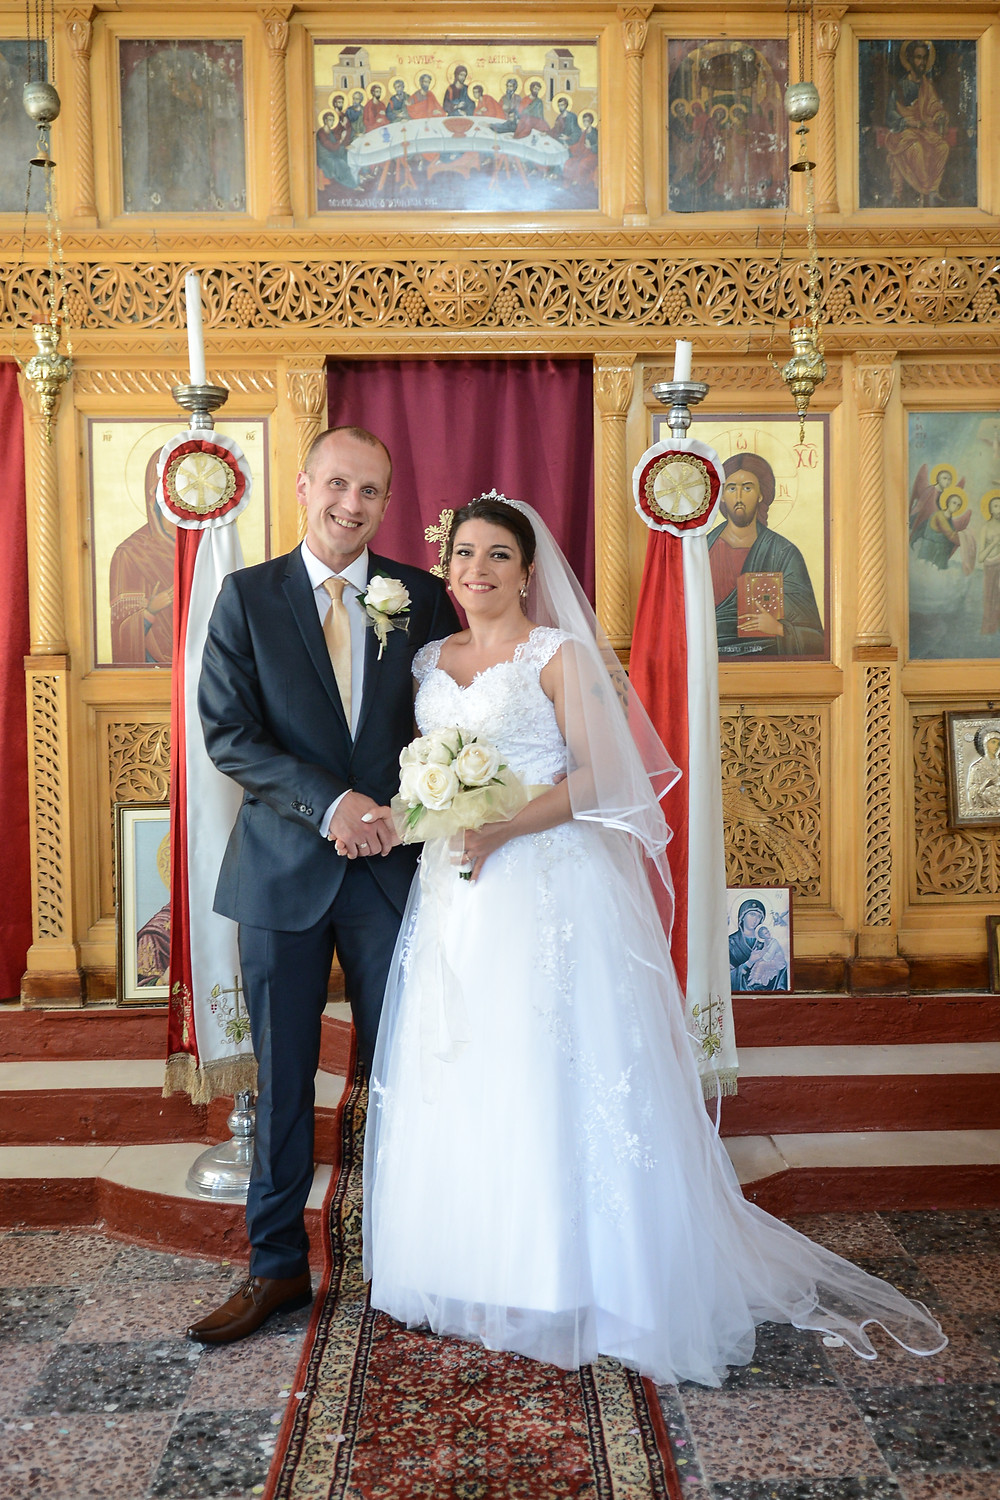 Bride & Groom standing inside the Panagitsa chapel infront of the iconostas in Parga